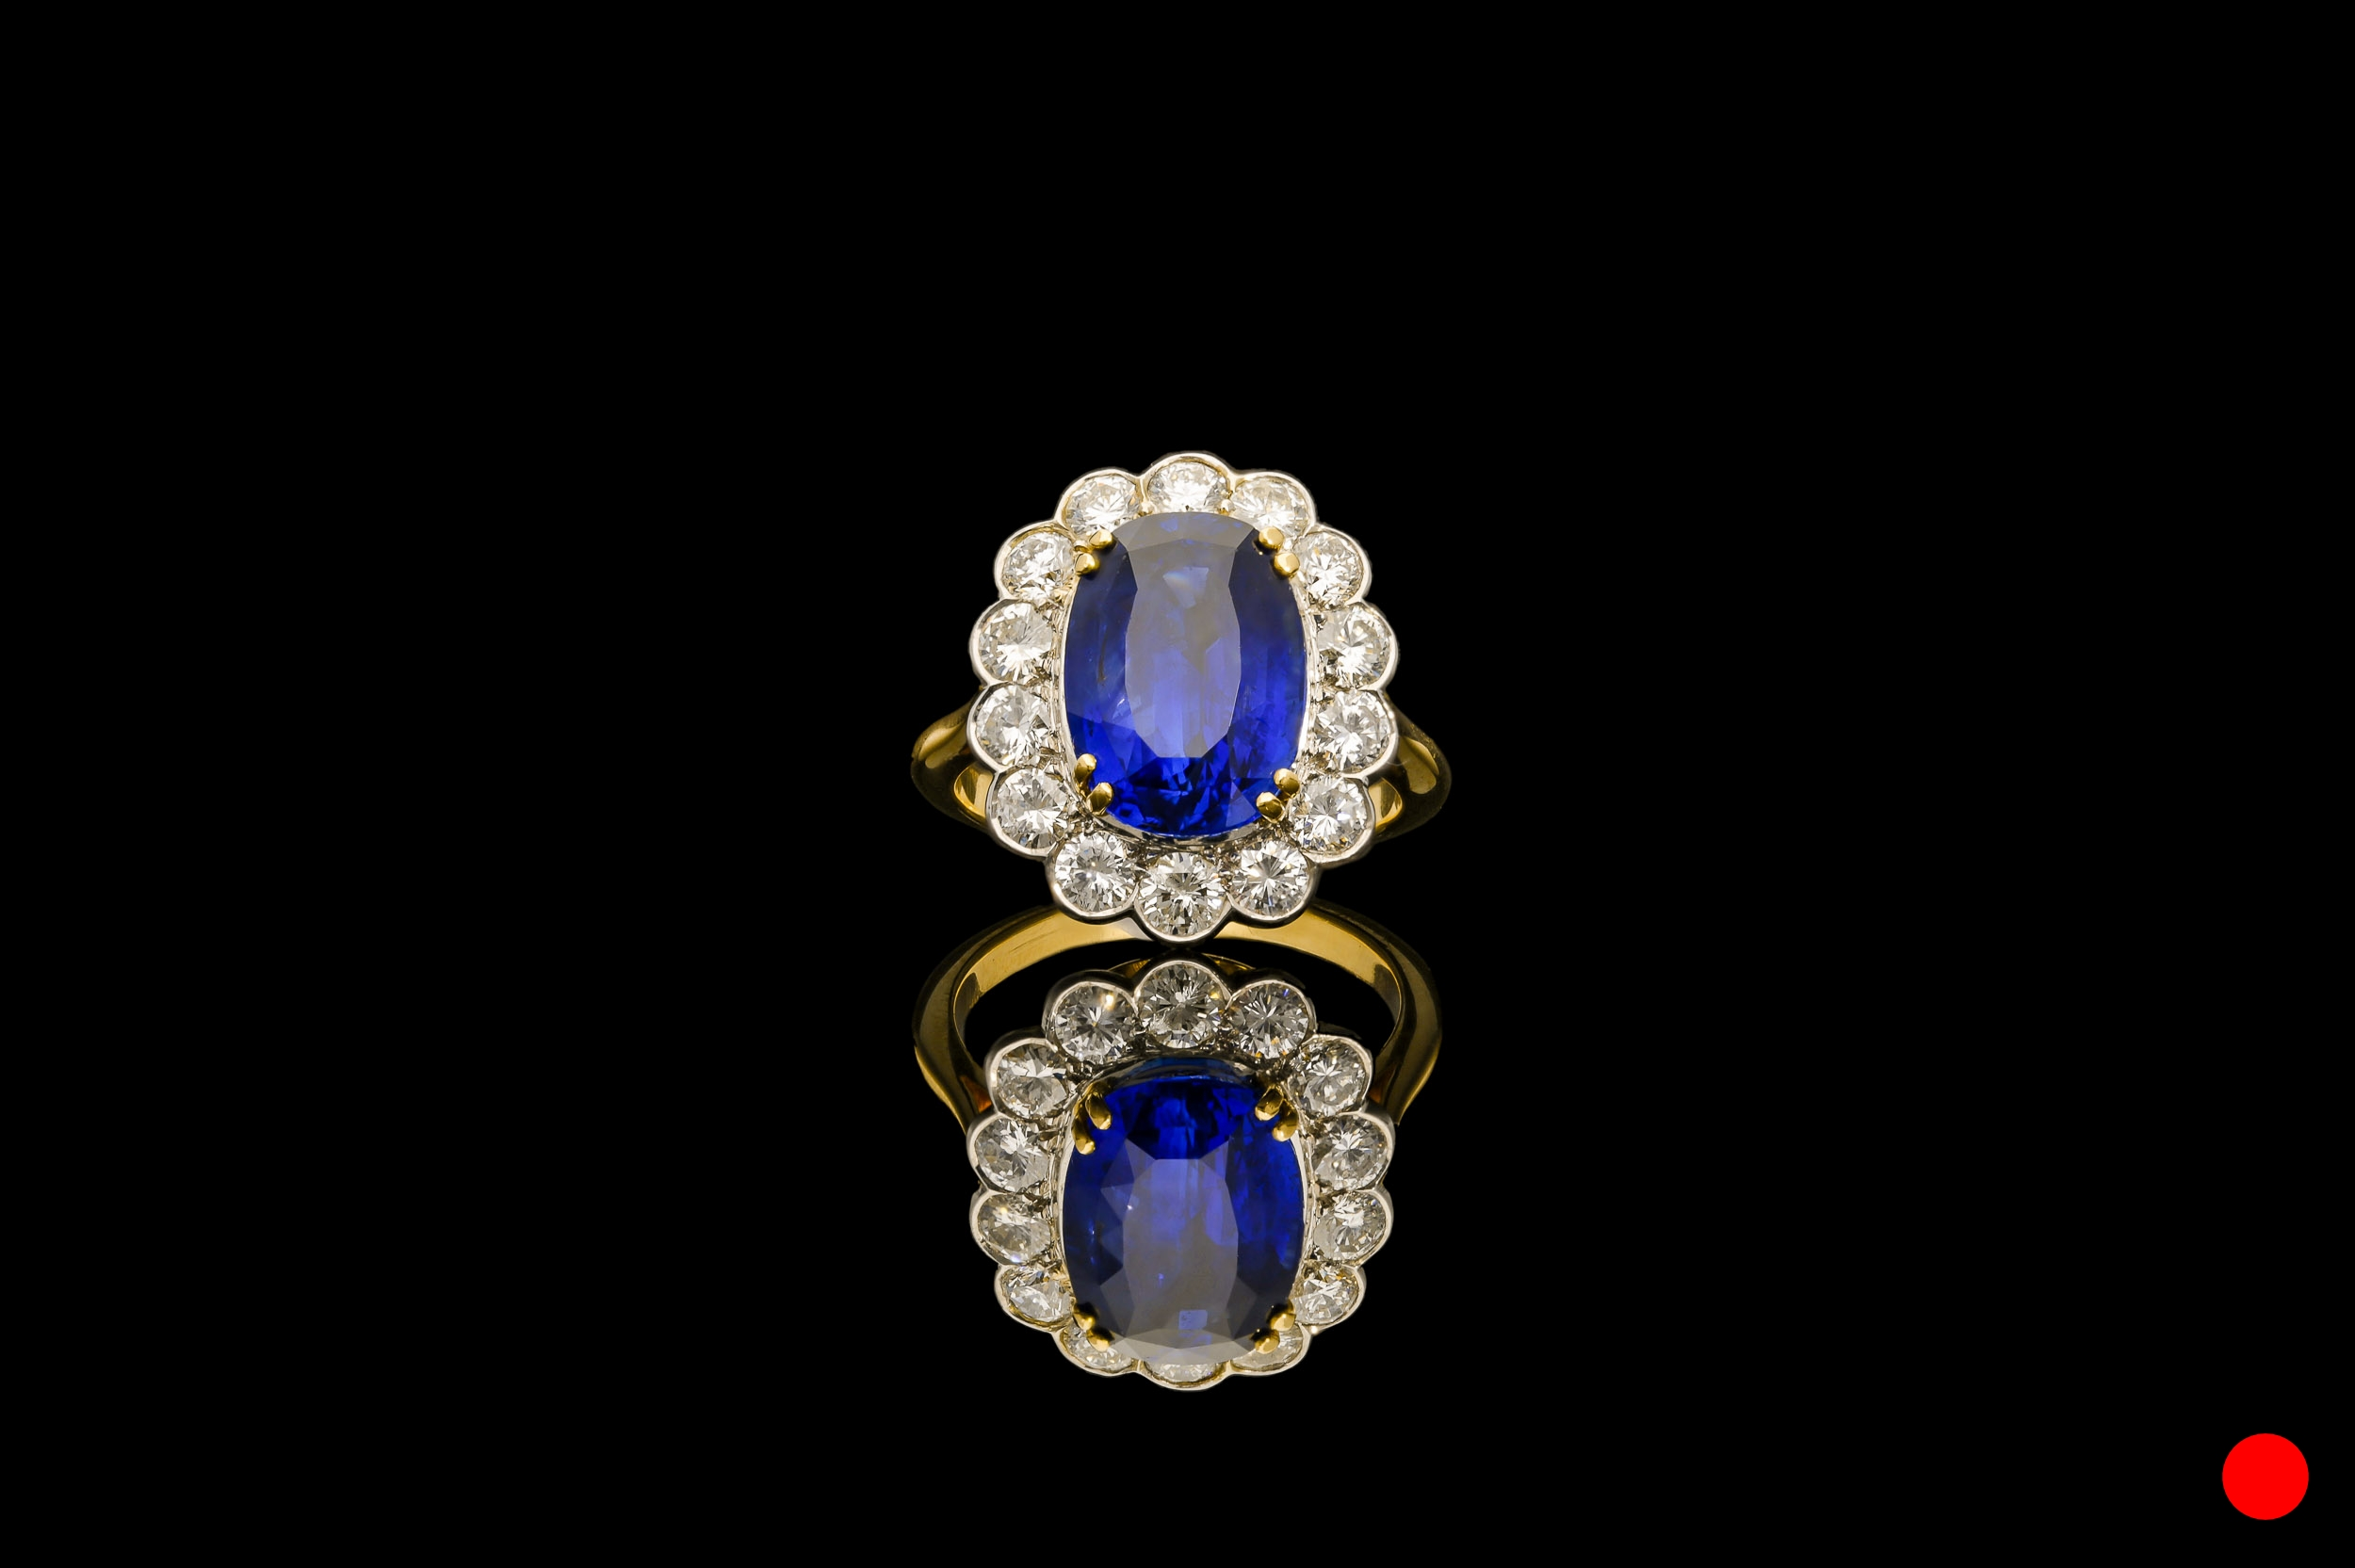 A Burmese sapphire and diamond ring | £47500